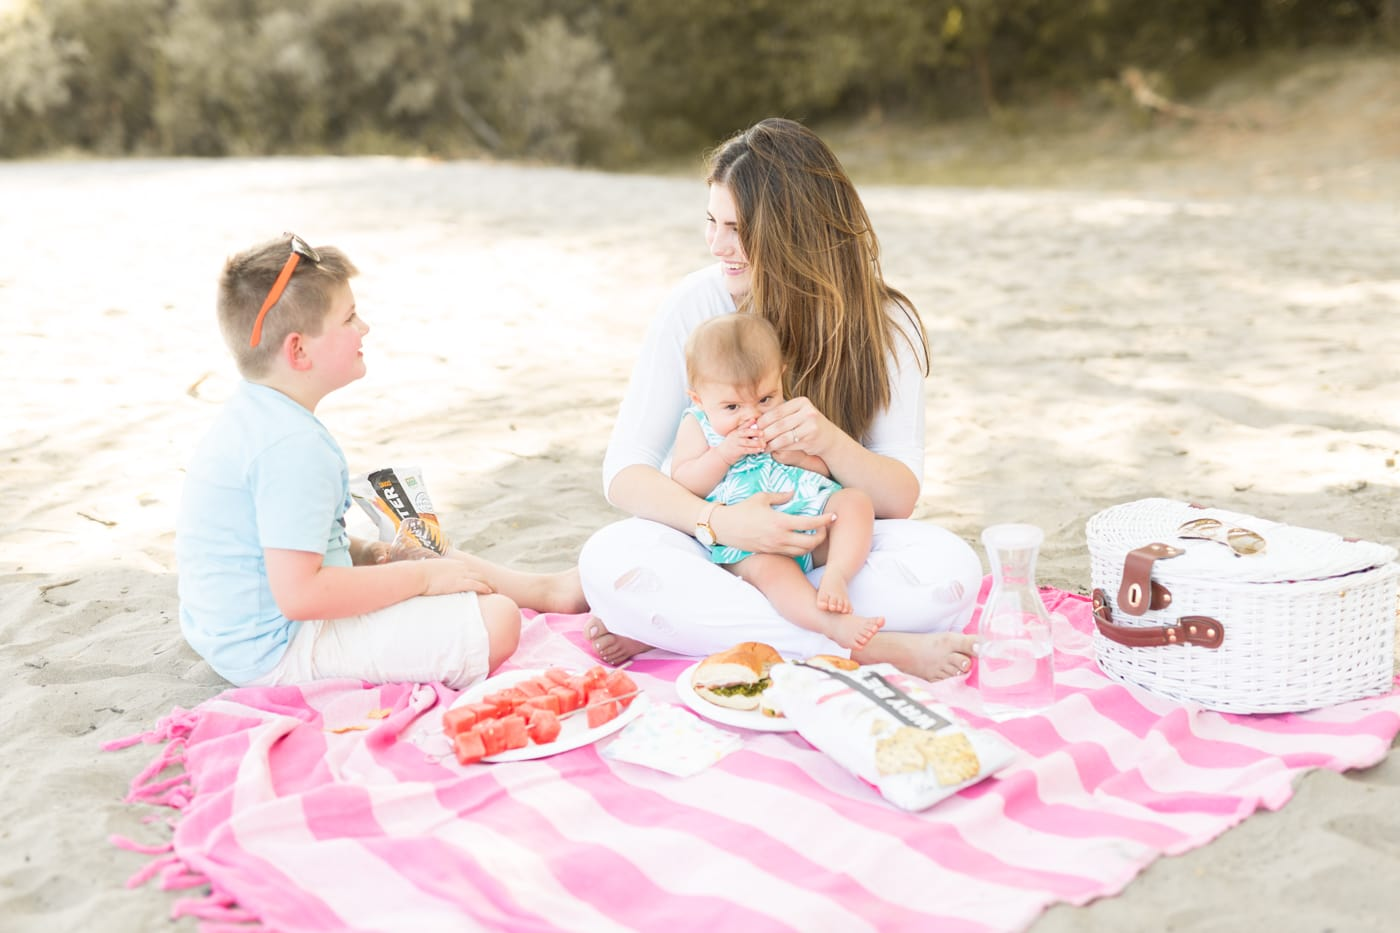 pink-family-picnic-basket